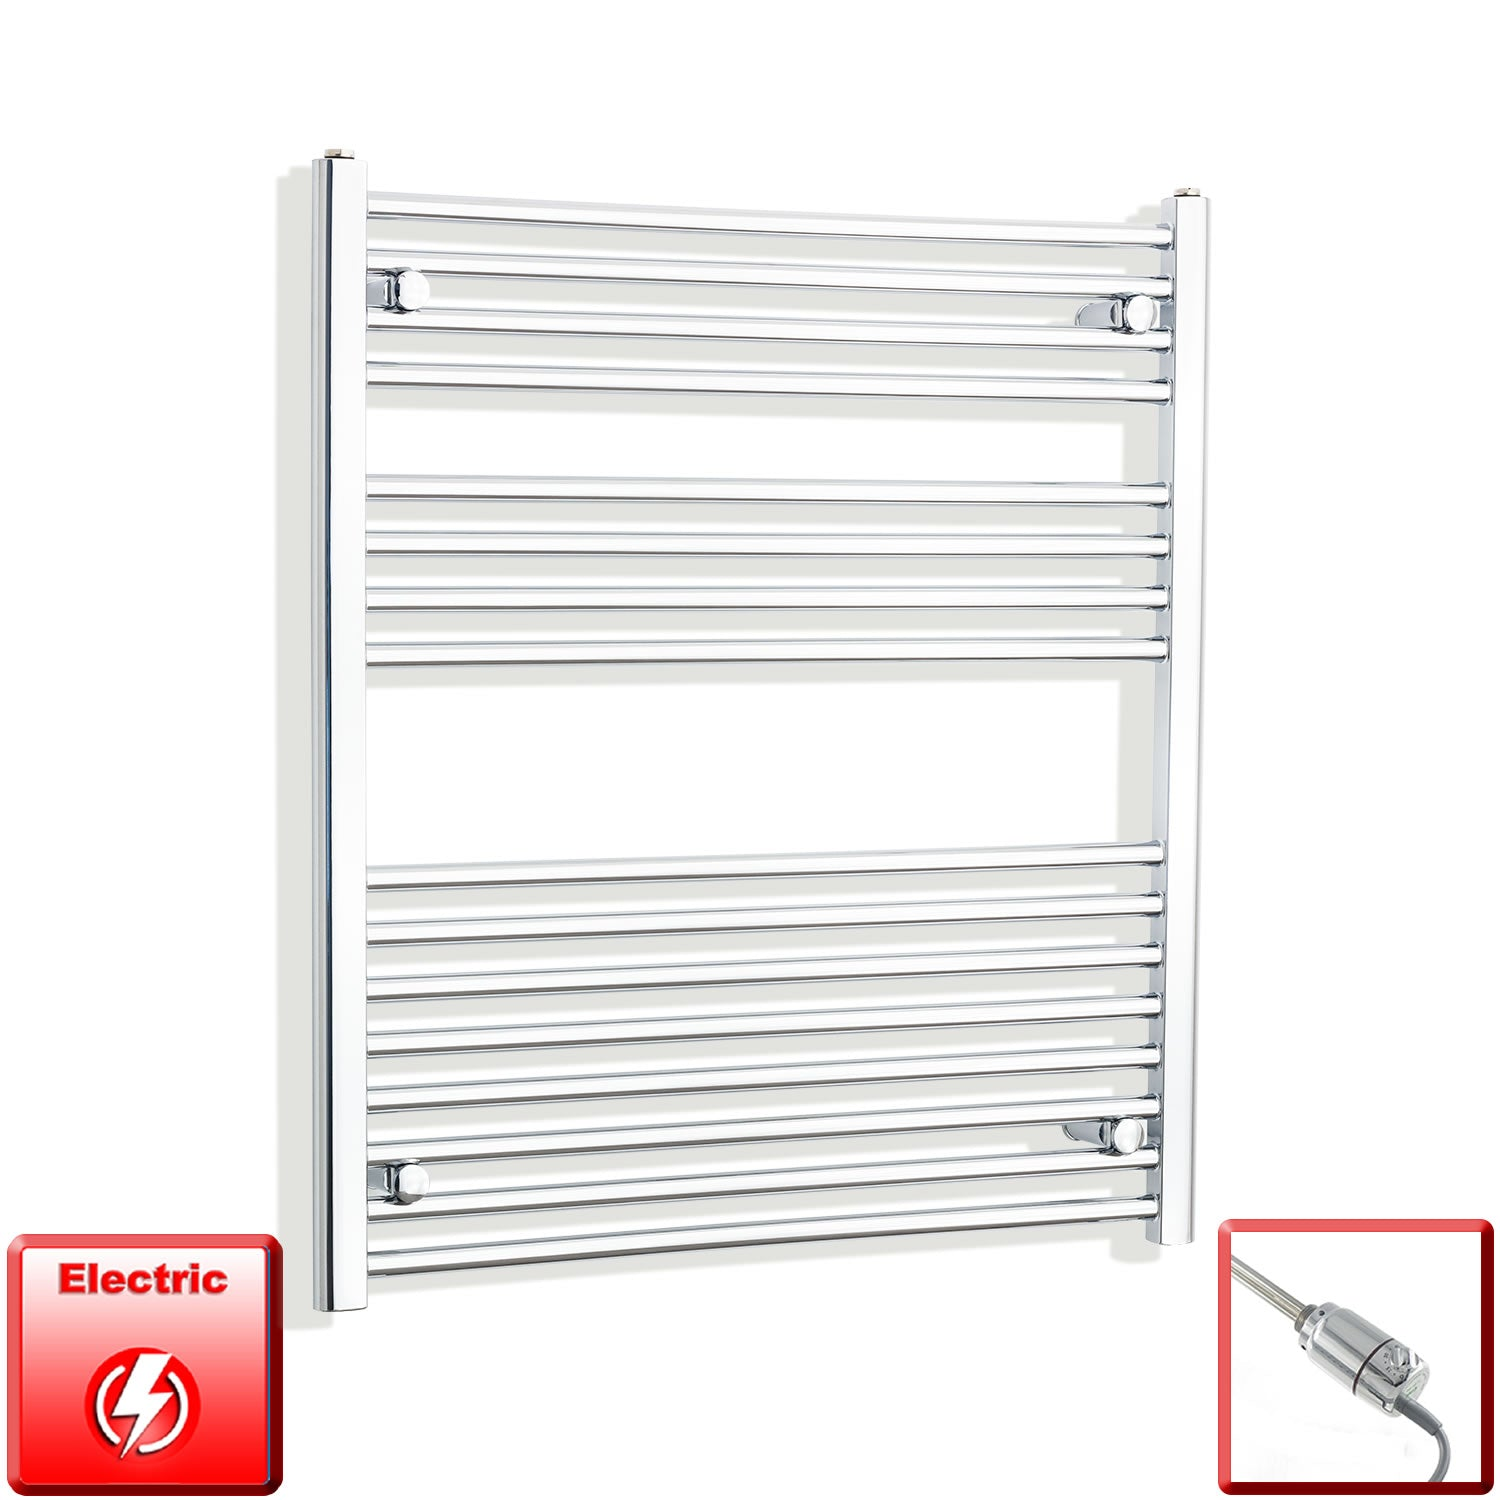 800mm Wide 900mm High Flat Chrome Pre-Filled Electric Heated Towel Rail Radiator HTR,GT Thermostatic